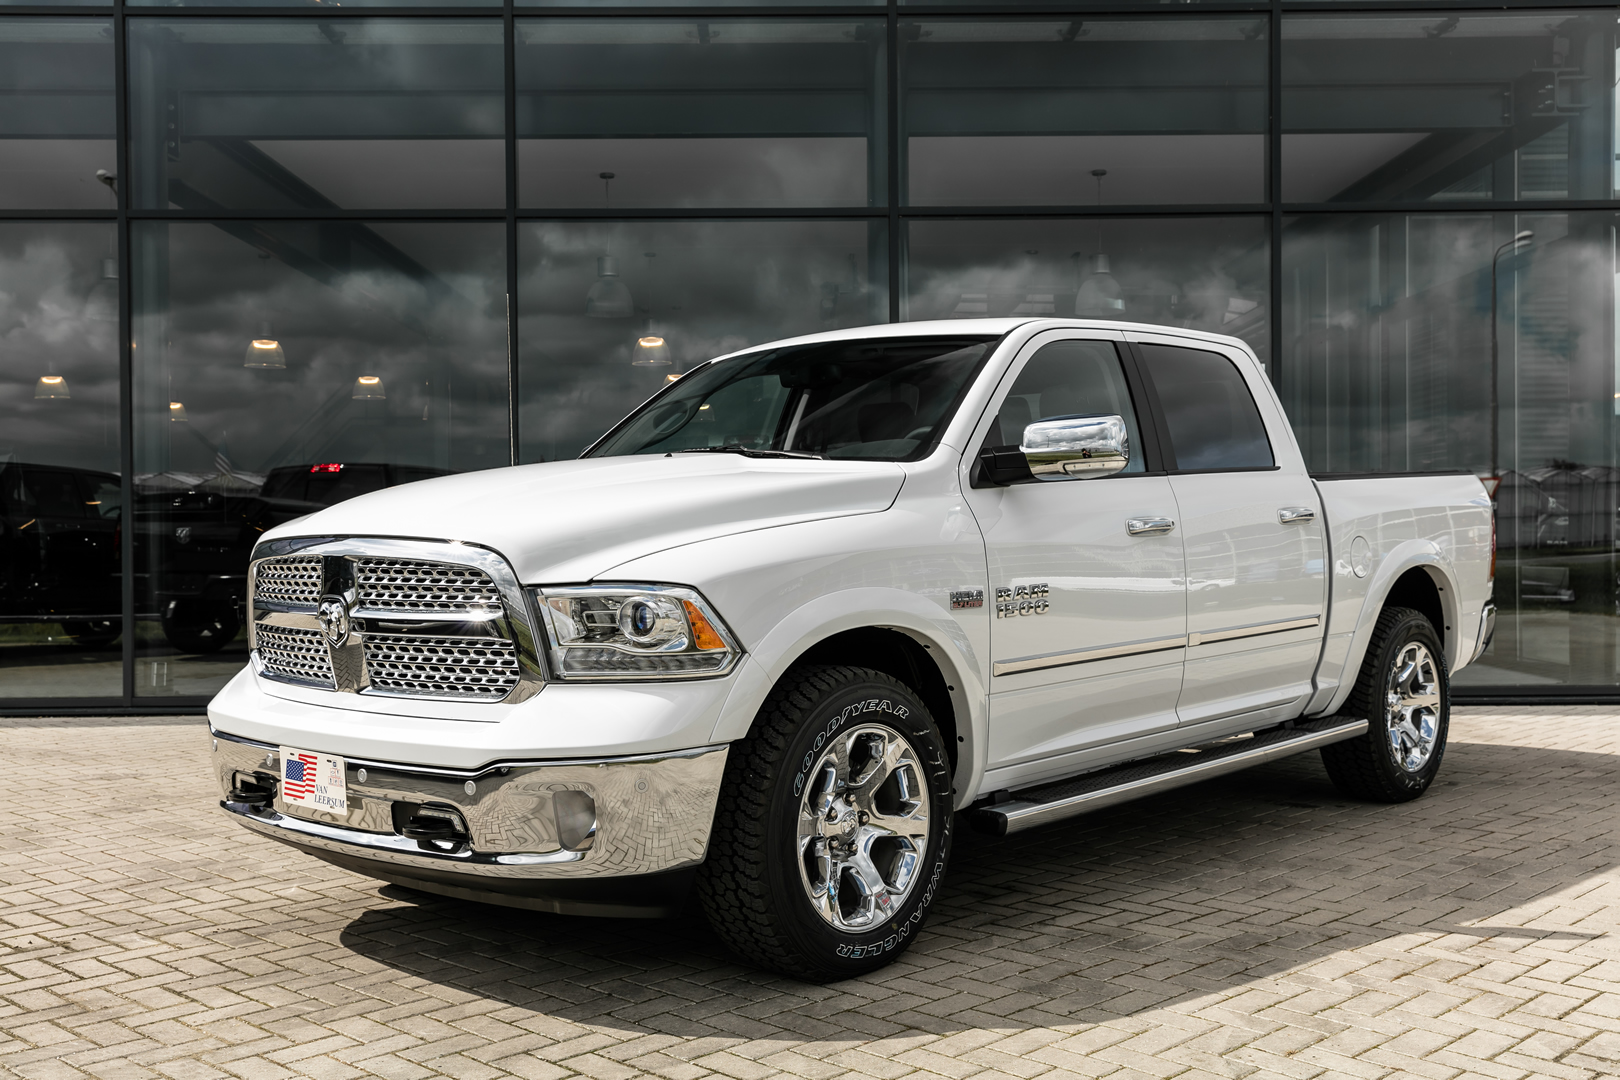 1998 dodge ram 1500 laramie 2018 dodge reviews. Black Bedroom Furniture Sets. Home Design Ideas